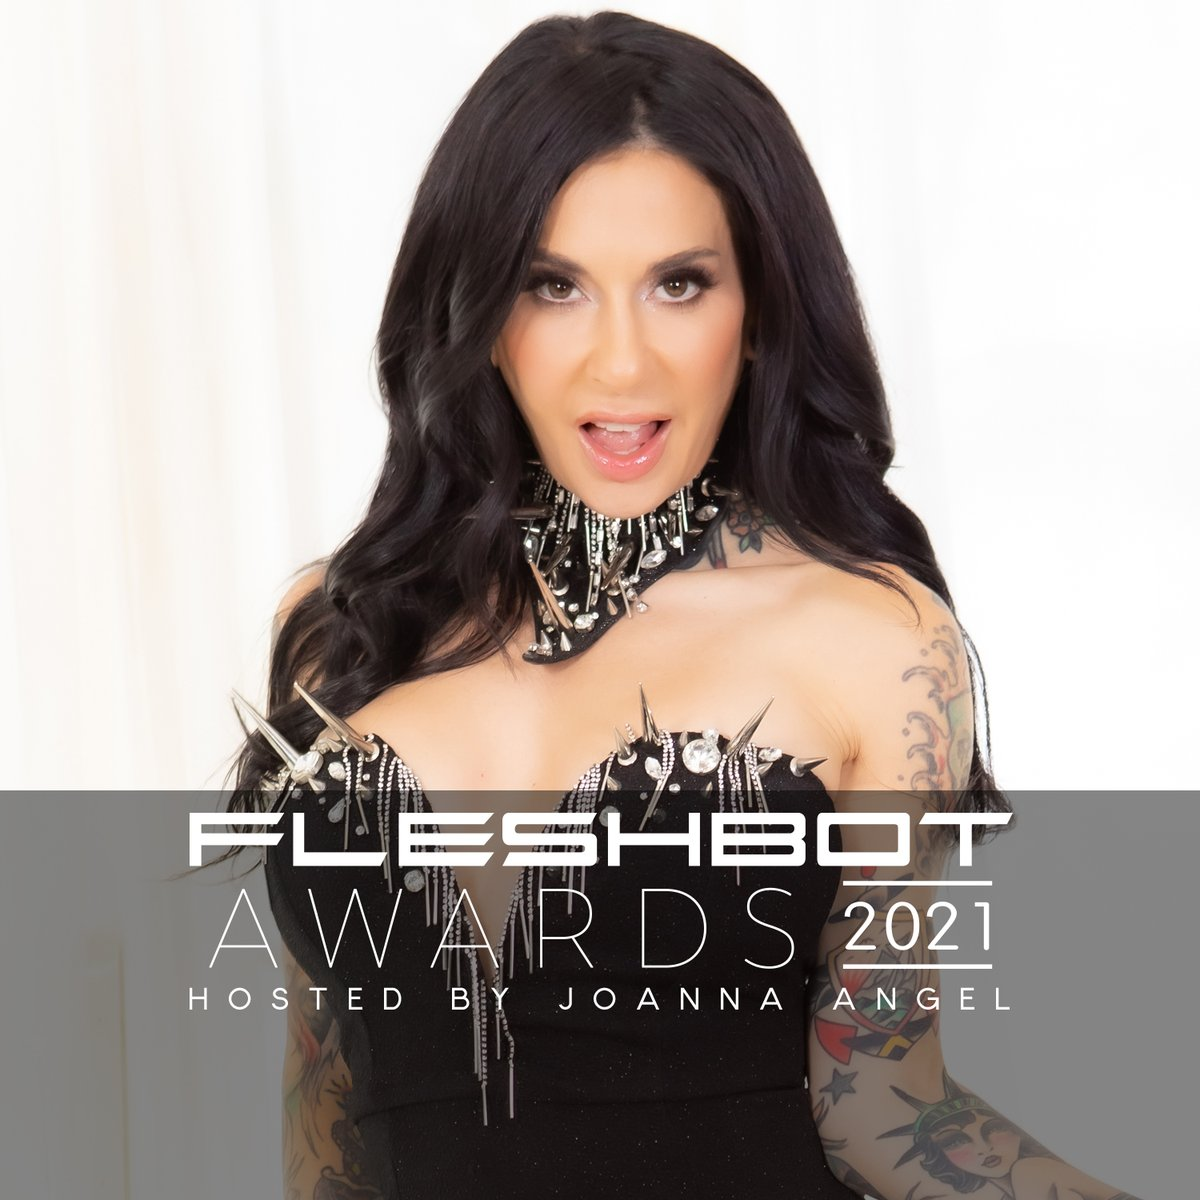 Who is your choice to win BEST NEW STARLET? Tag your favorite new #pornstar here, and make sure she's nominated at the #FleshBotAwards, hosted by @JoannaAngel! Submit now: fleshbotawards.com/submit-a-nomin…